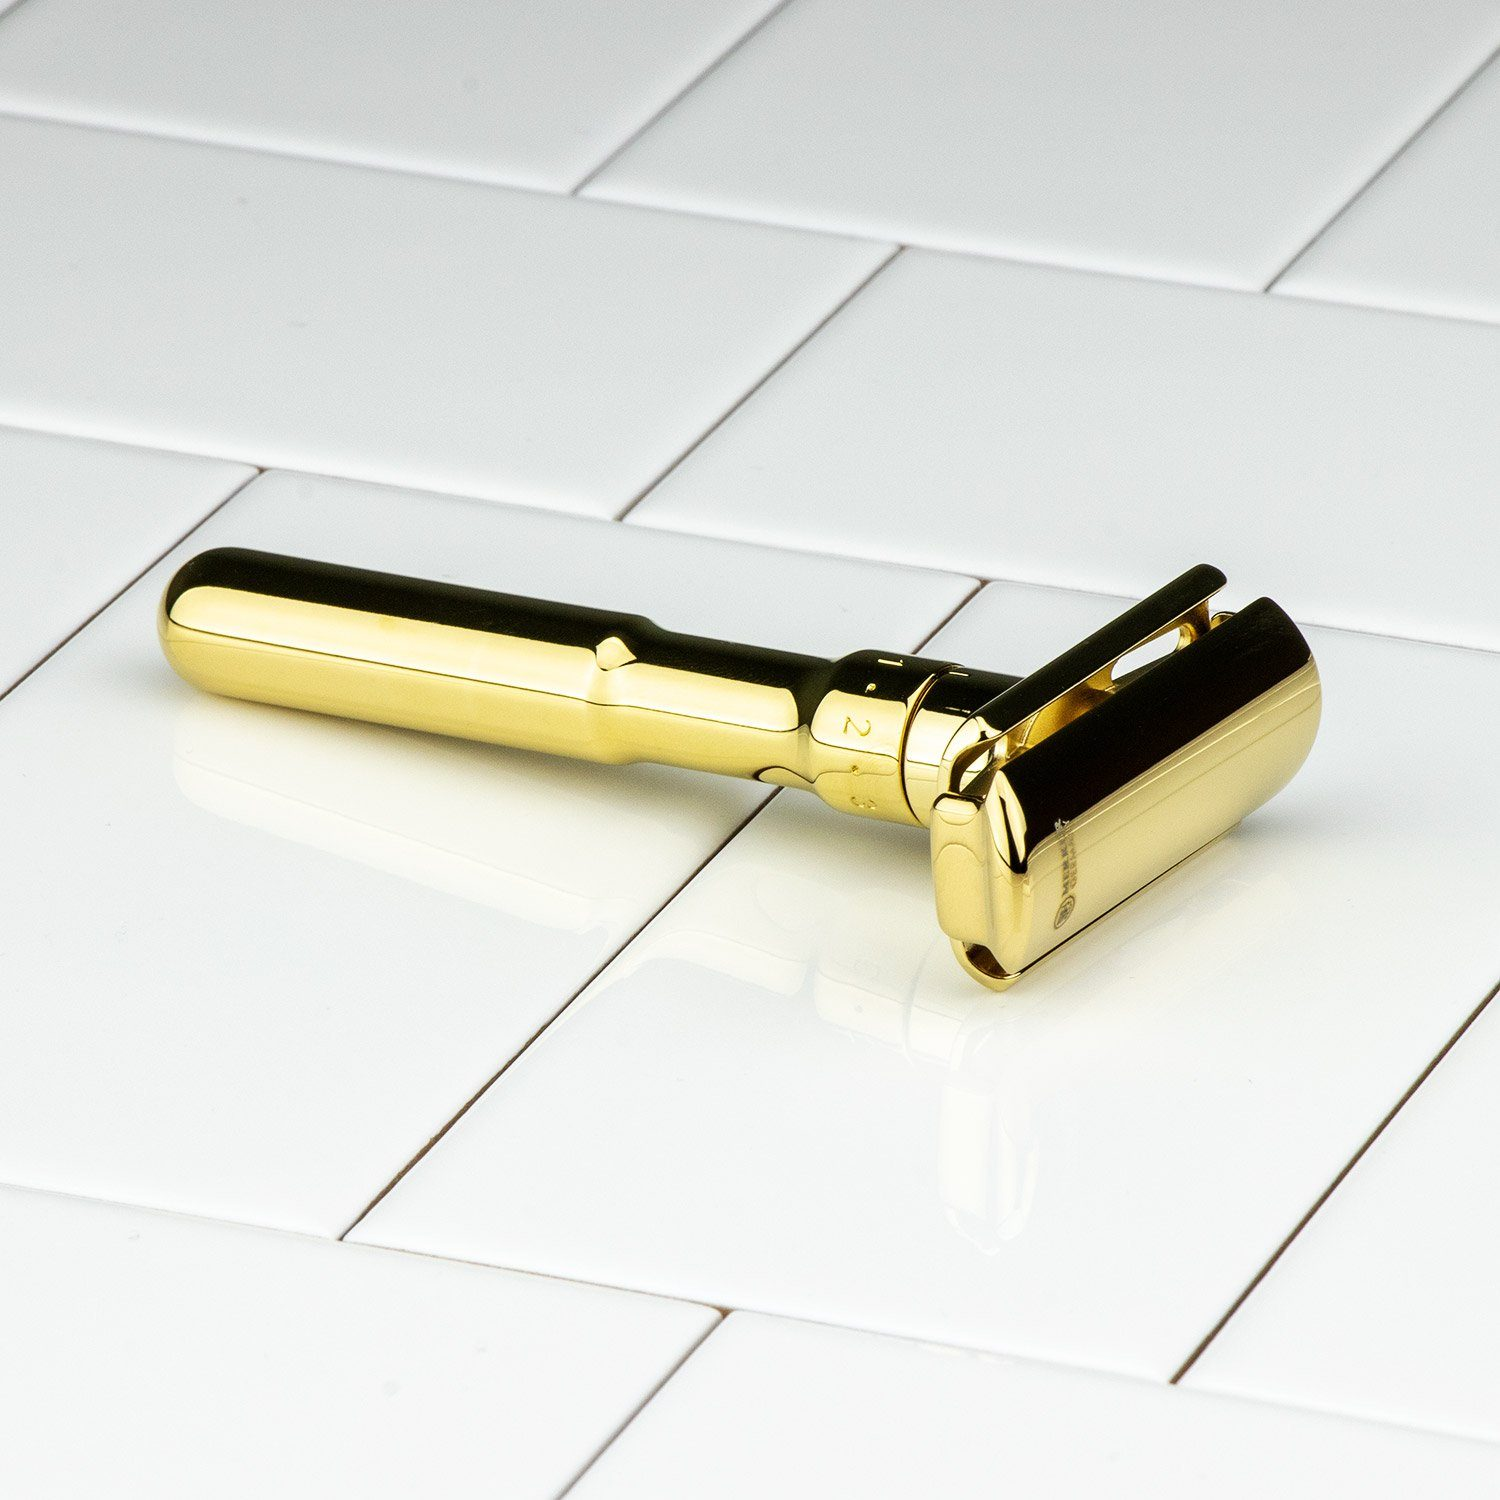 Merkur Futur Adjustable Double Edge Safety Razor